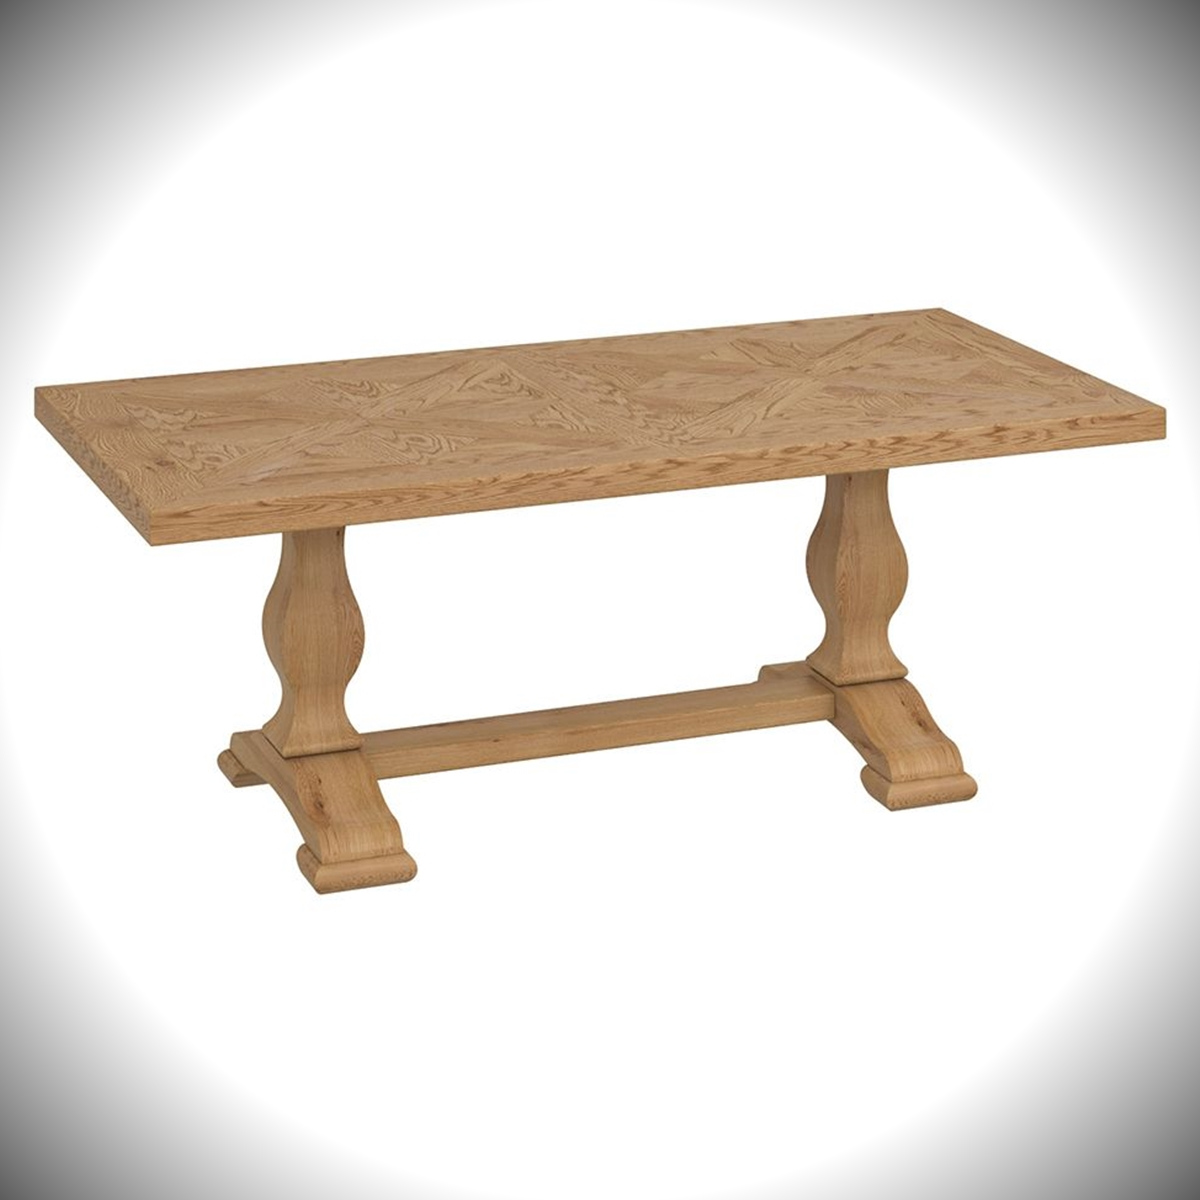 Belgrave Coffee Table - Rustic Oak